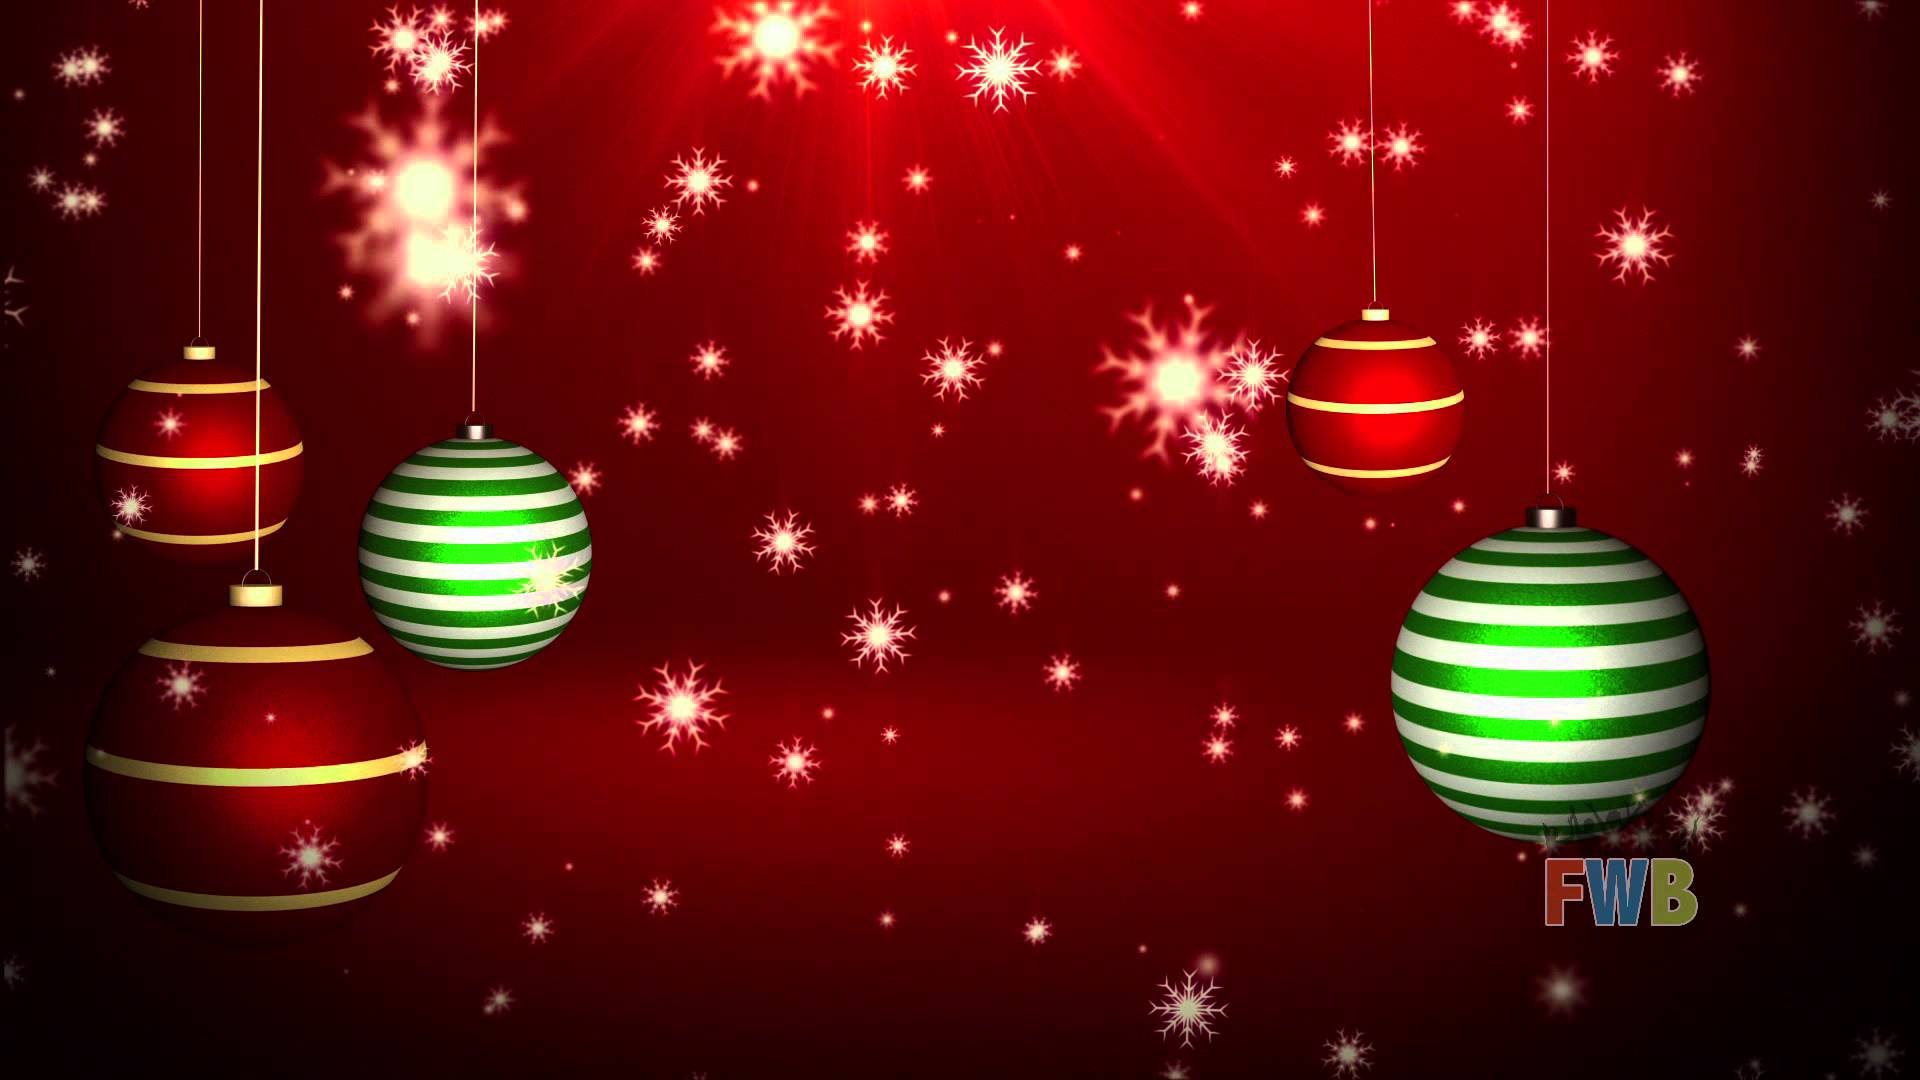 Free-Christmas-Worship-Background-wallpaper-wpc5804993